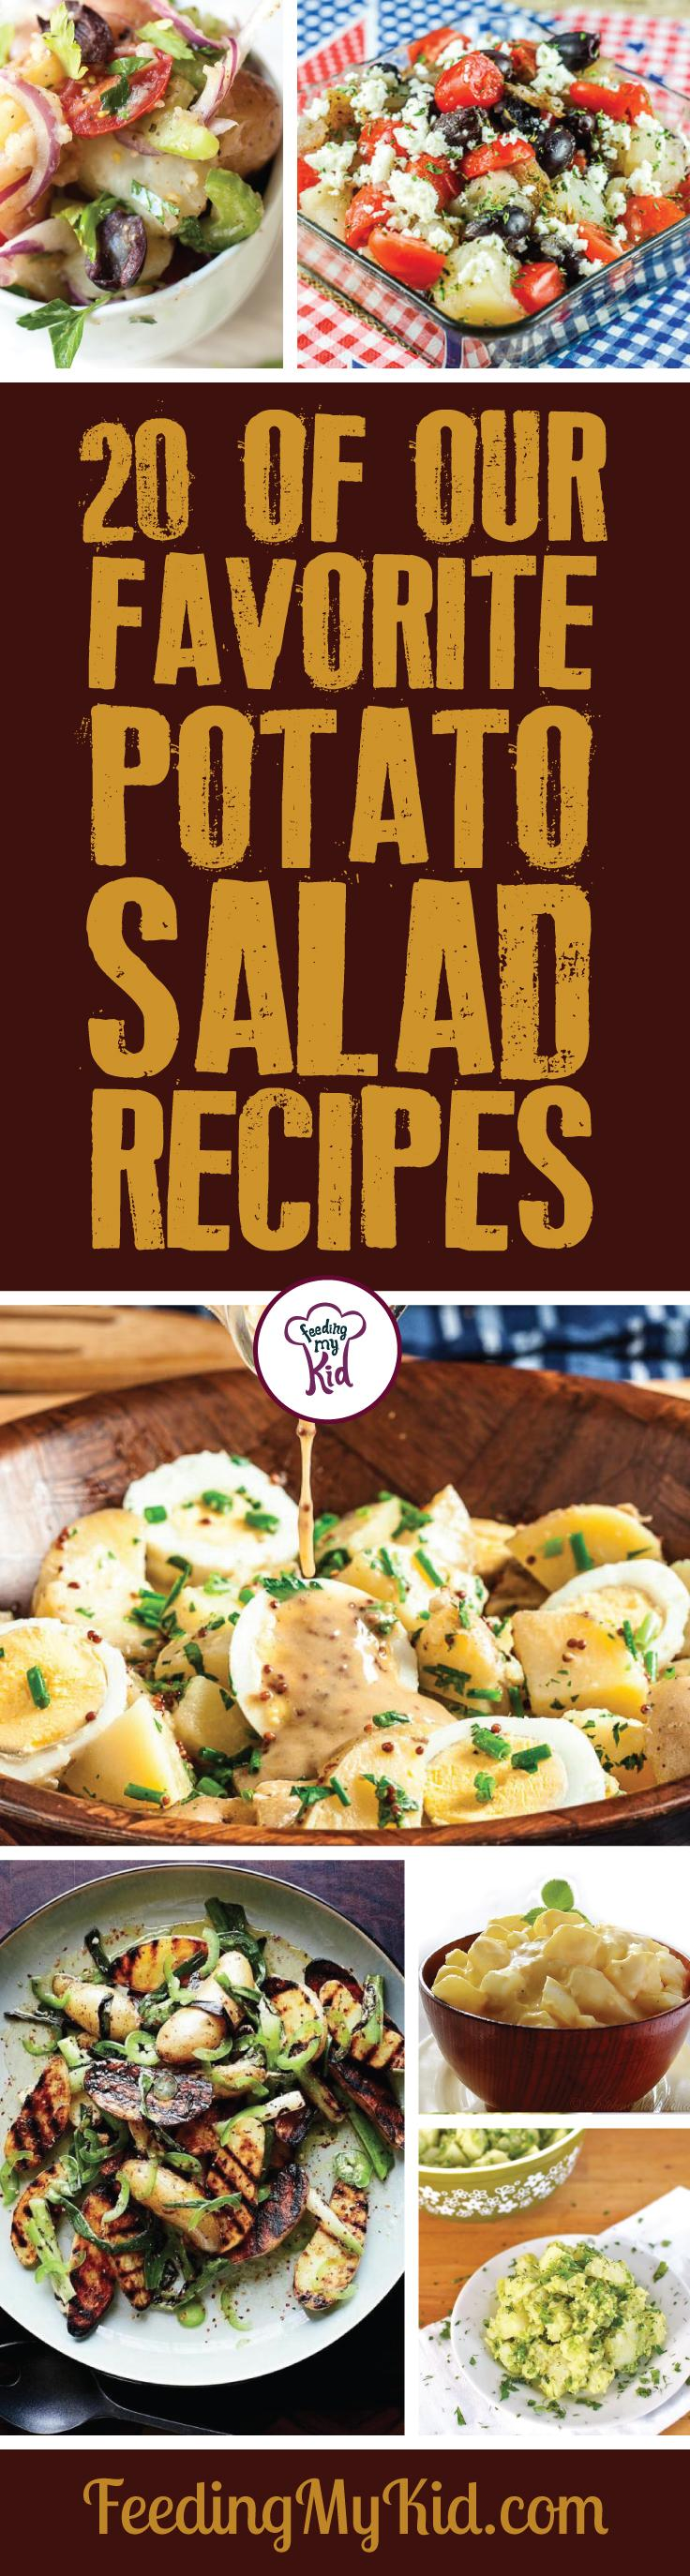 Try these amazing potato salad recipes! They're perfect for any meal and any event! These amazing side dishes will make you want more! Feeding My Kid is a filled with all the information you need about how to raise your kids, from healthy tips to nutritious recipes. #FeedingMyKid #recipes #sidedishes #potatorecipes